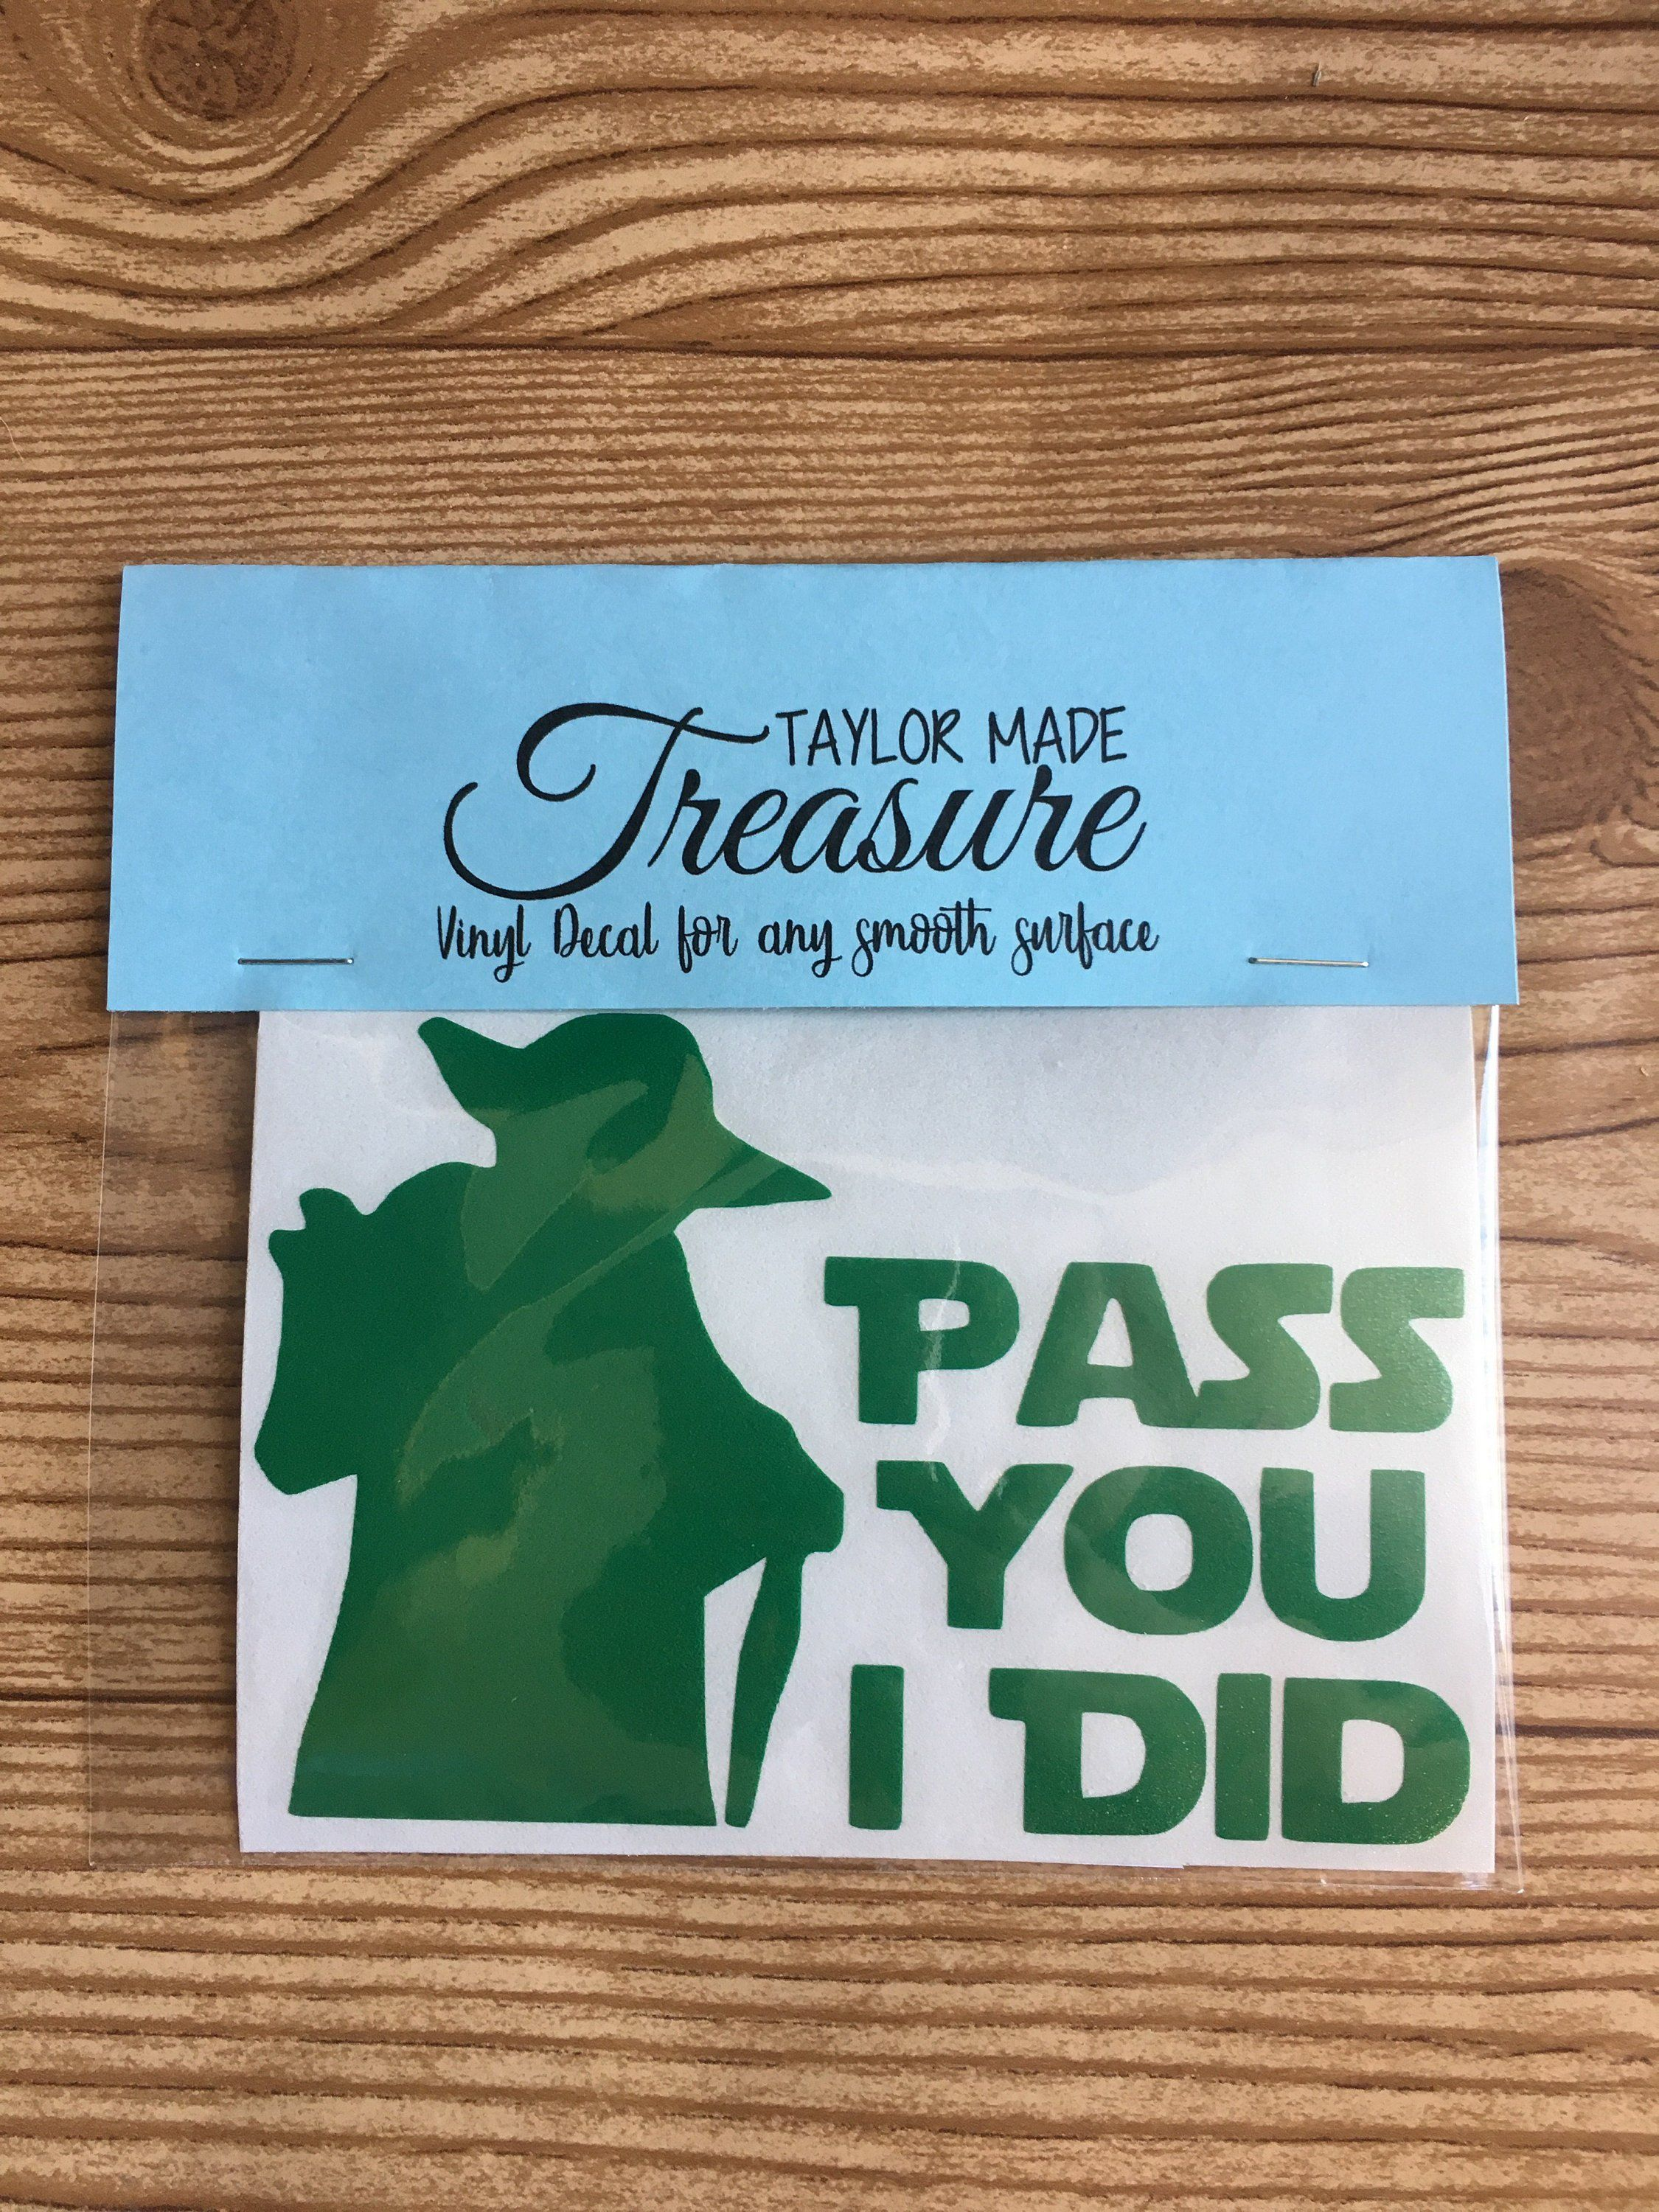 Pass You I Did Funny Yoda Vinyl Decal Sticker Star Wars Car Decal By Taylormadetreasureus On Etsy Star Wars Decal Vinyl Decals Disney Car Decals [ 3000 x 2250 Pixel ]